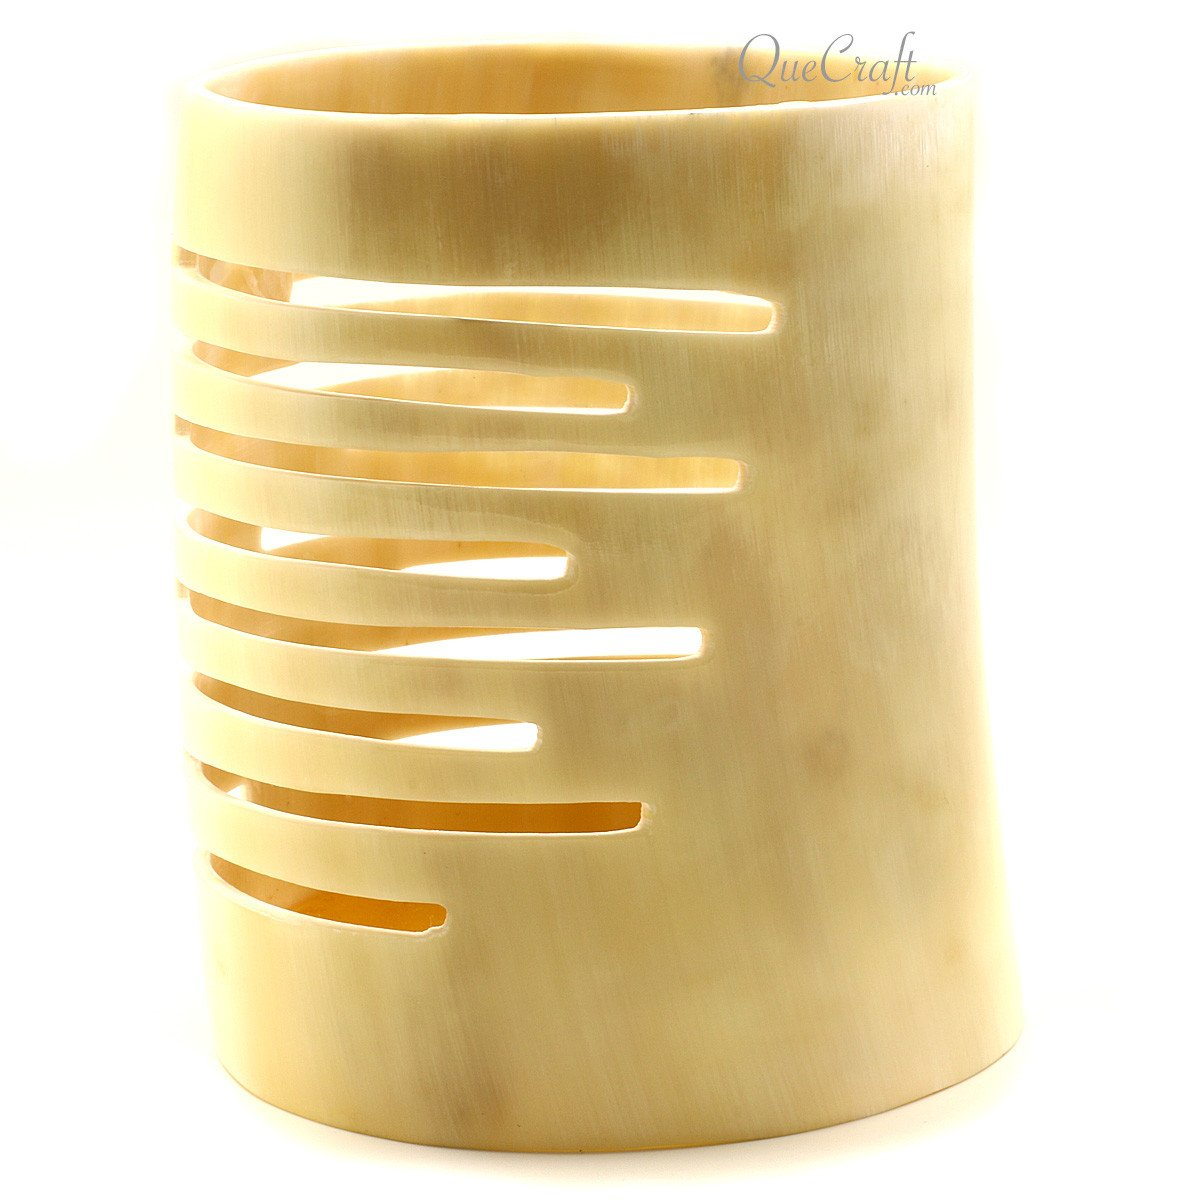 Horn Candle Holder #12280 - HORN.JEWELRY by QueCraft